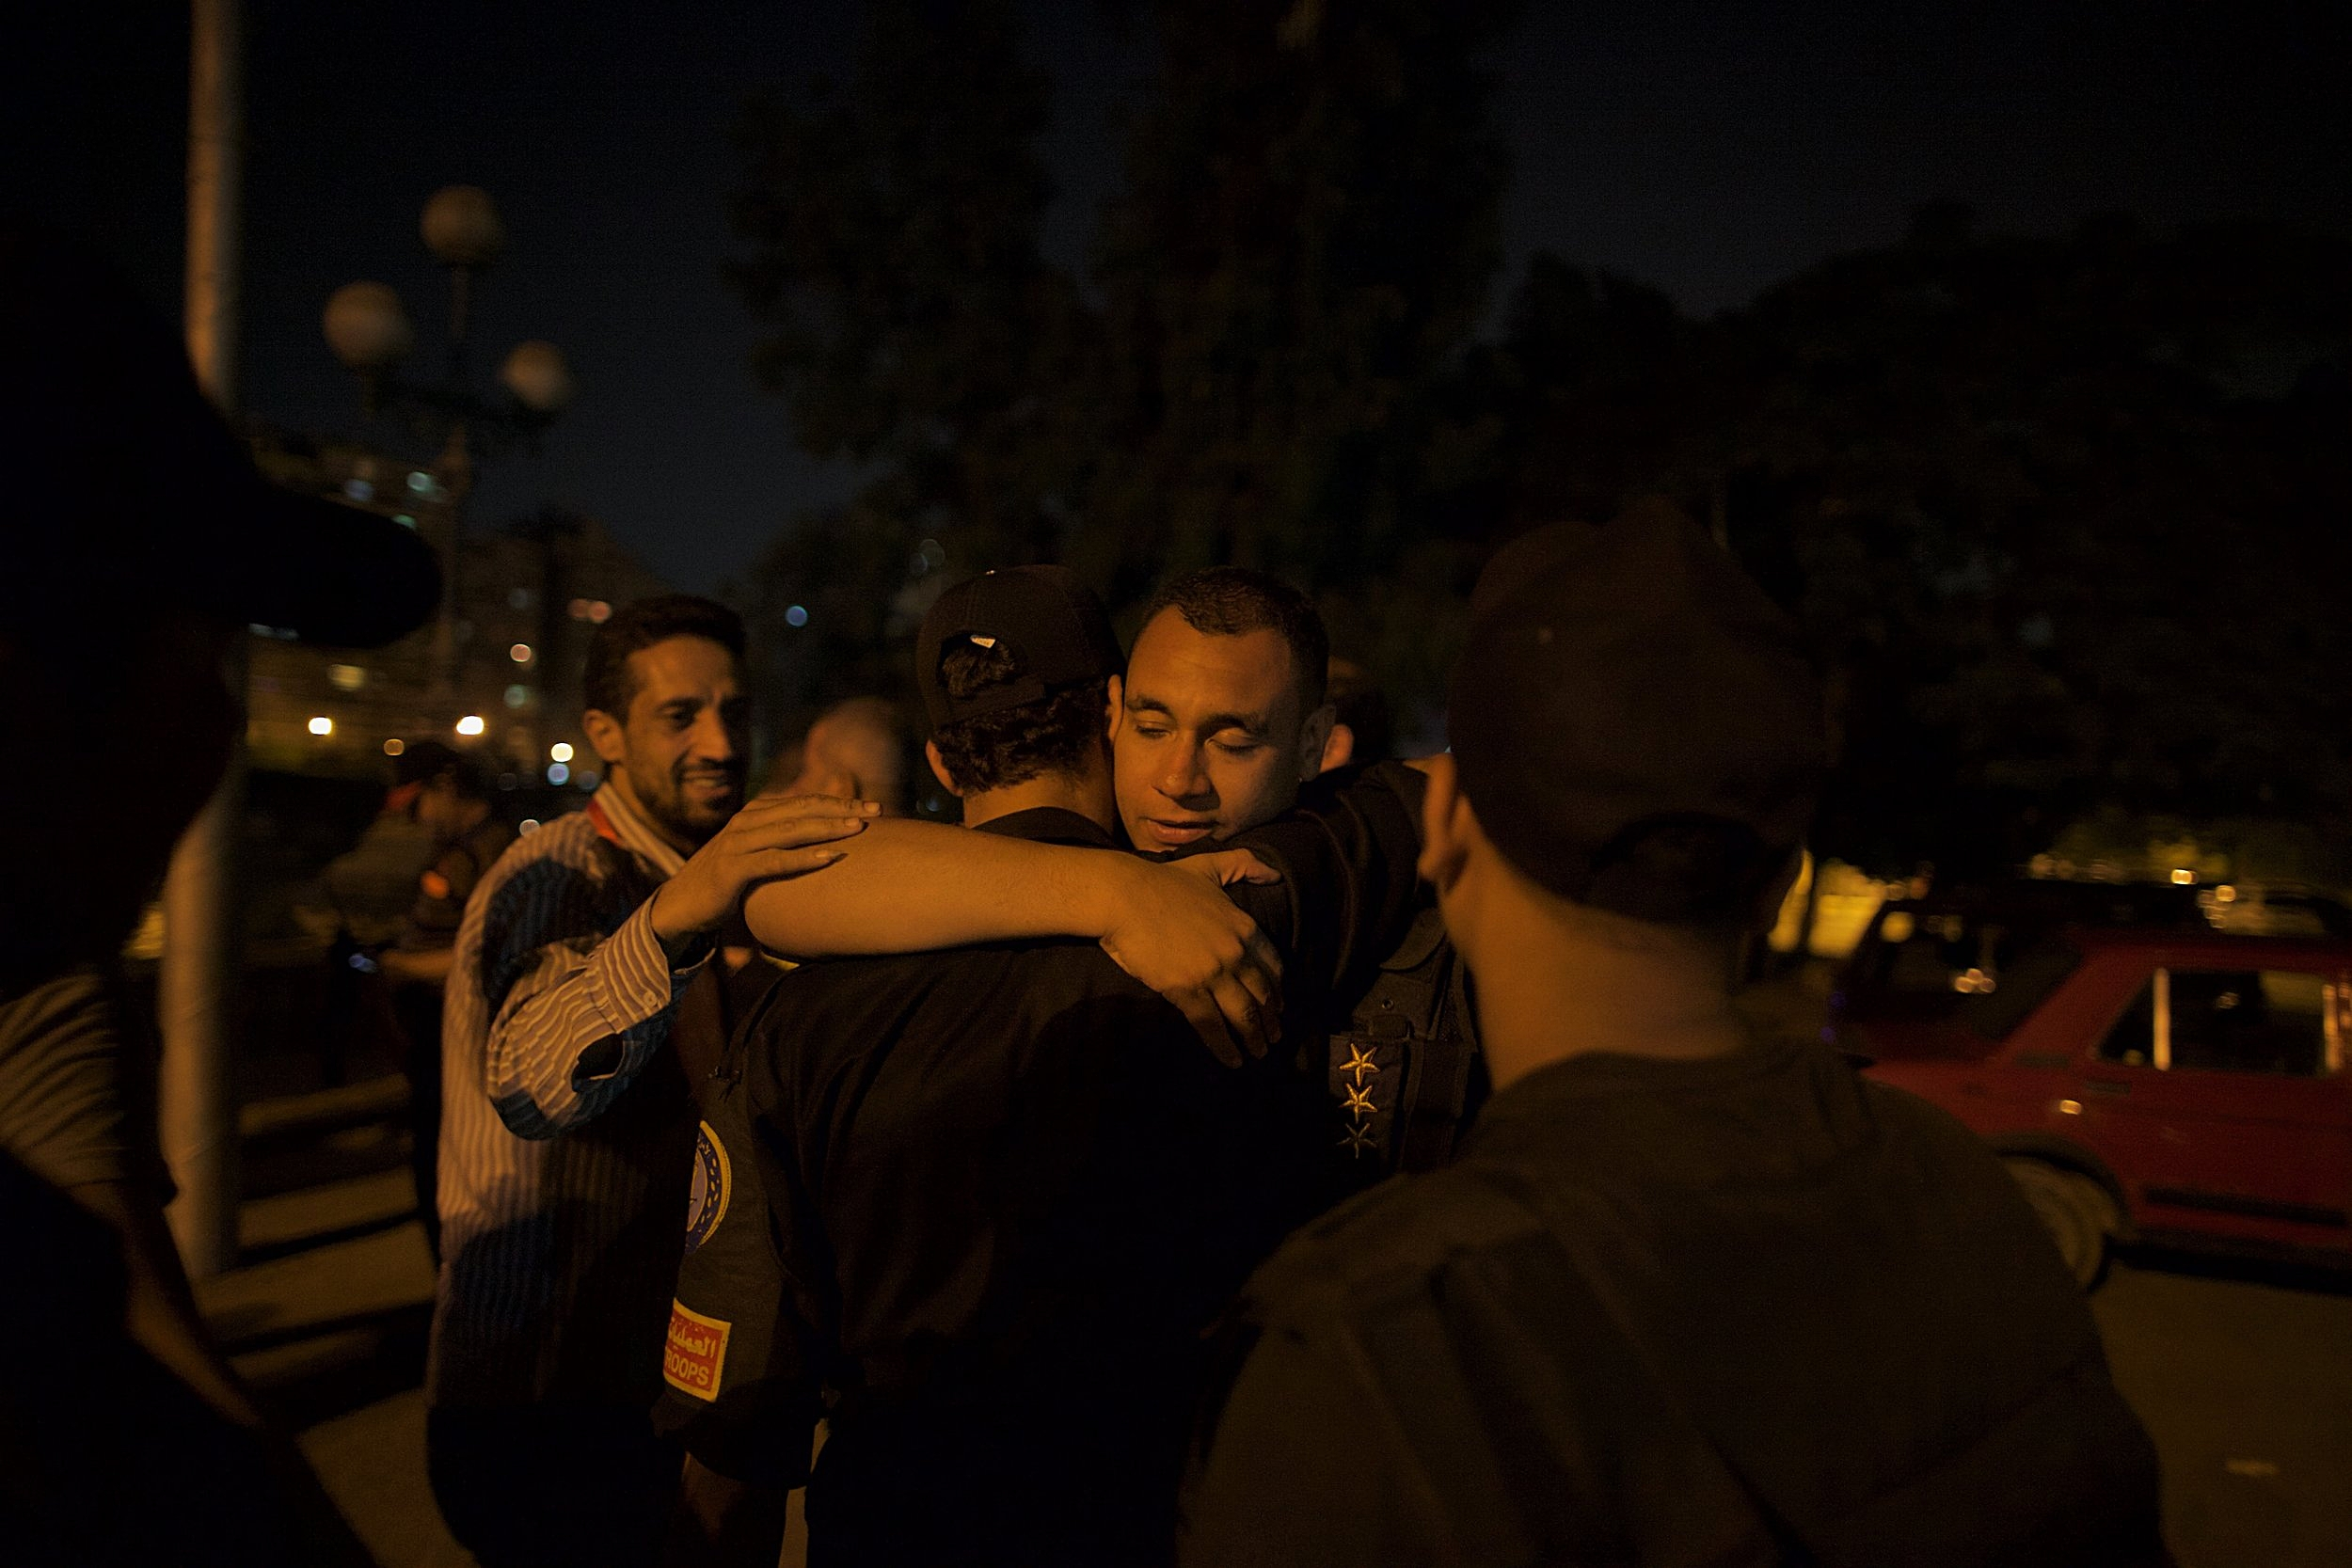 Just outside Tahrir Square, members of Egyptian security services embrace moments after the military deposed Mohammed Morsi and installed Gen. Abdel Fattah el-Sisi as president.